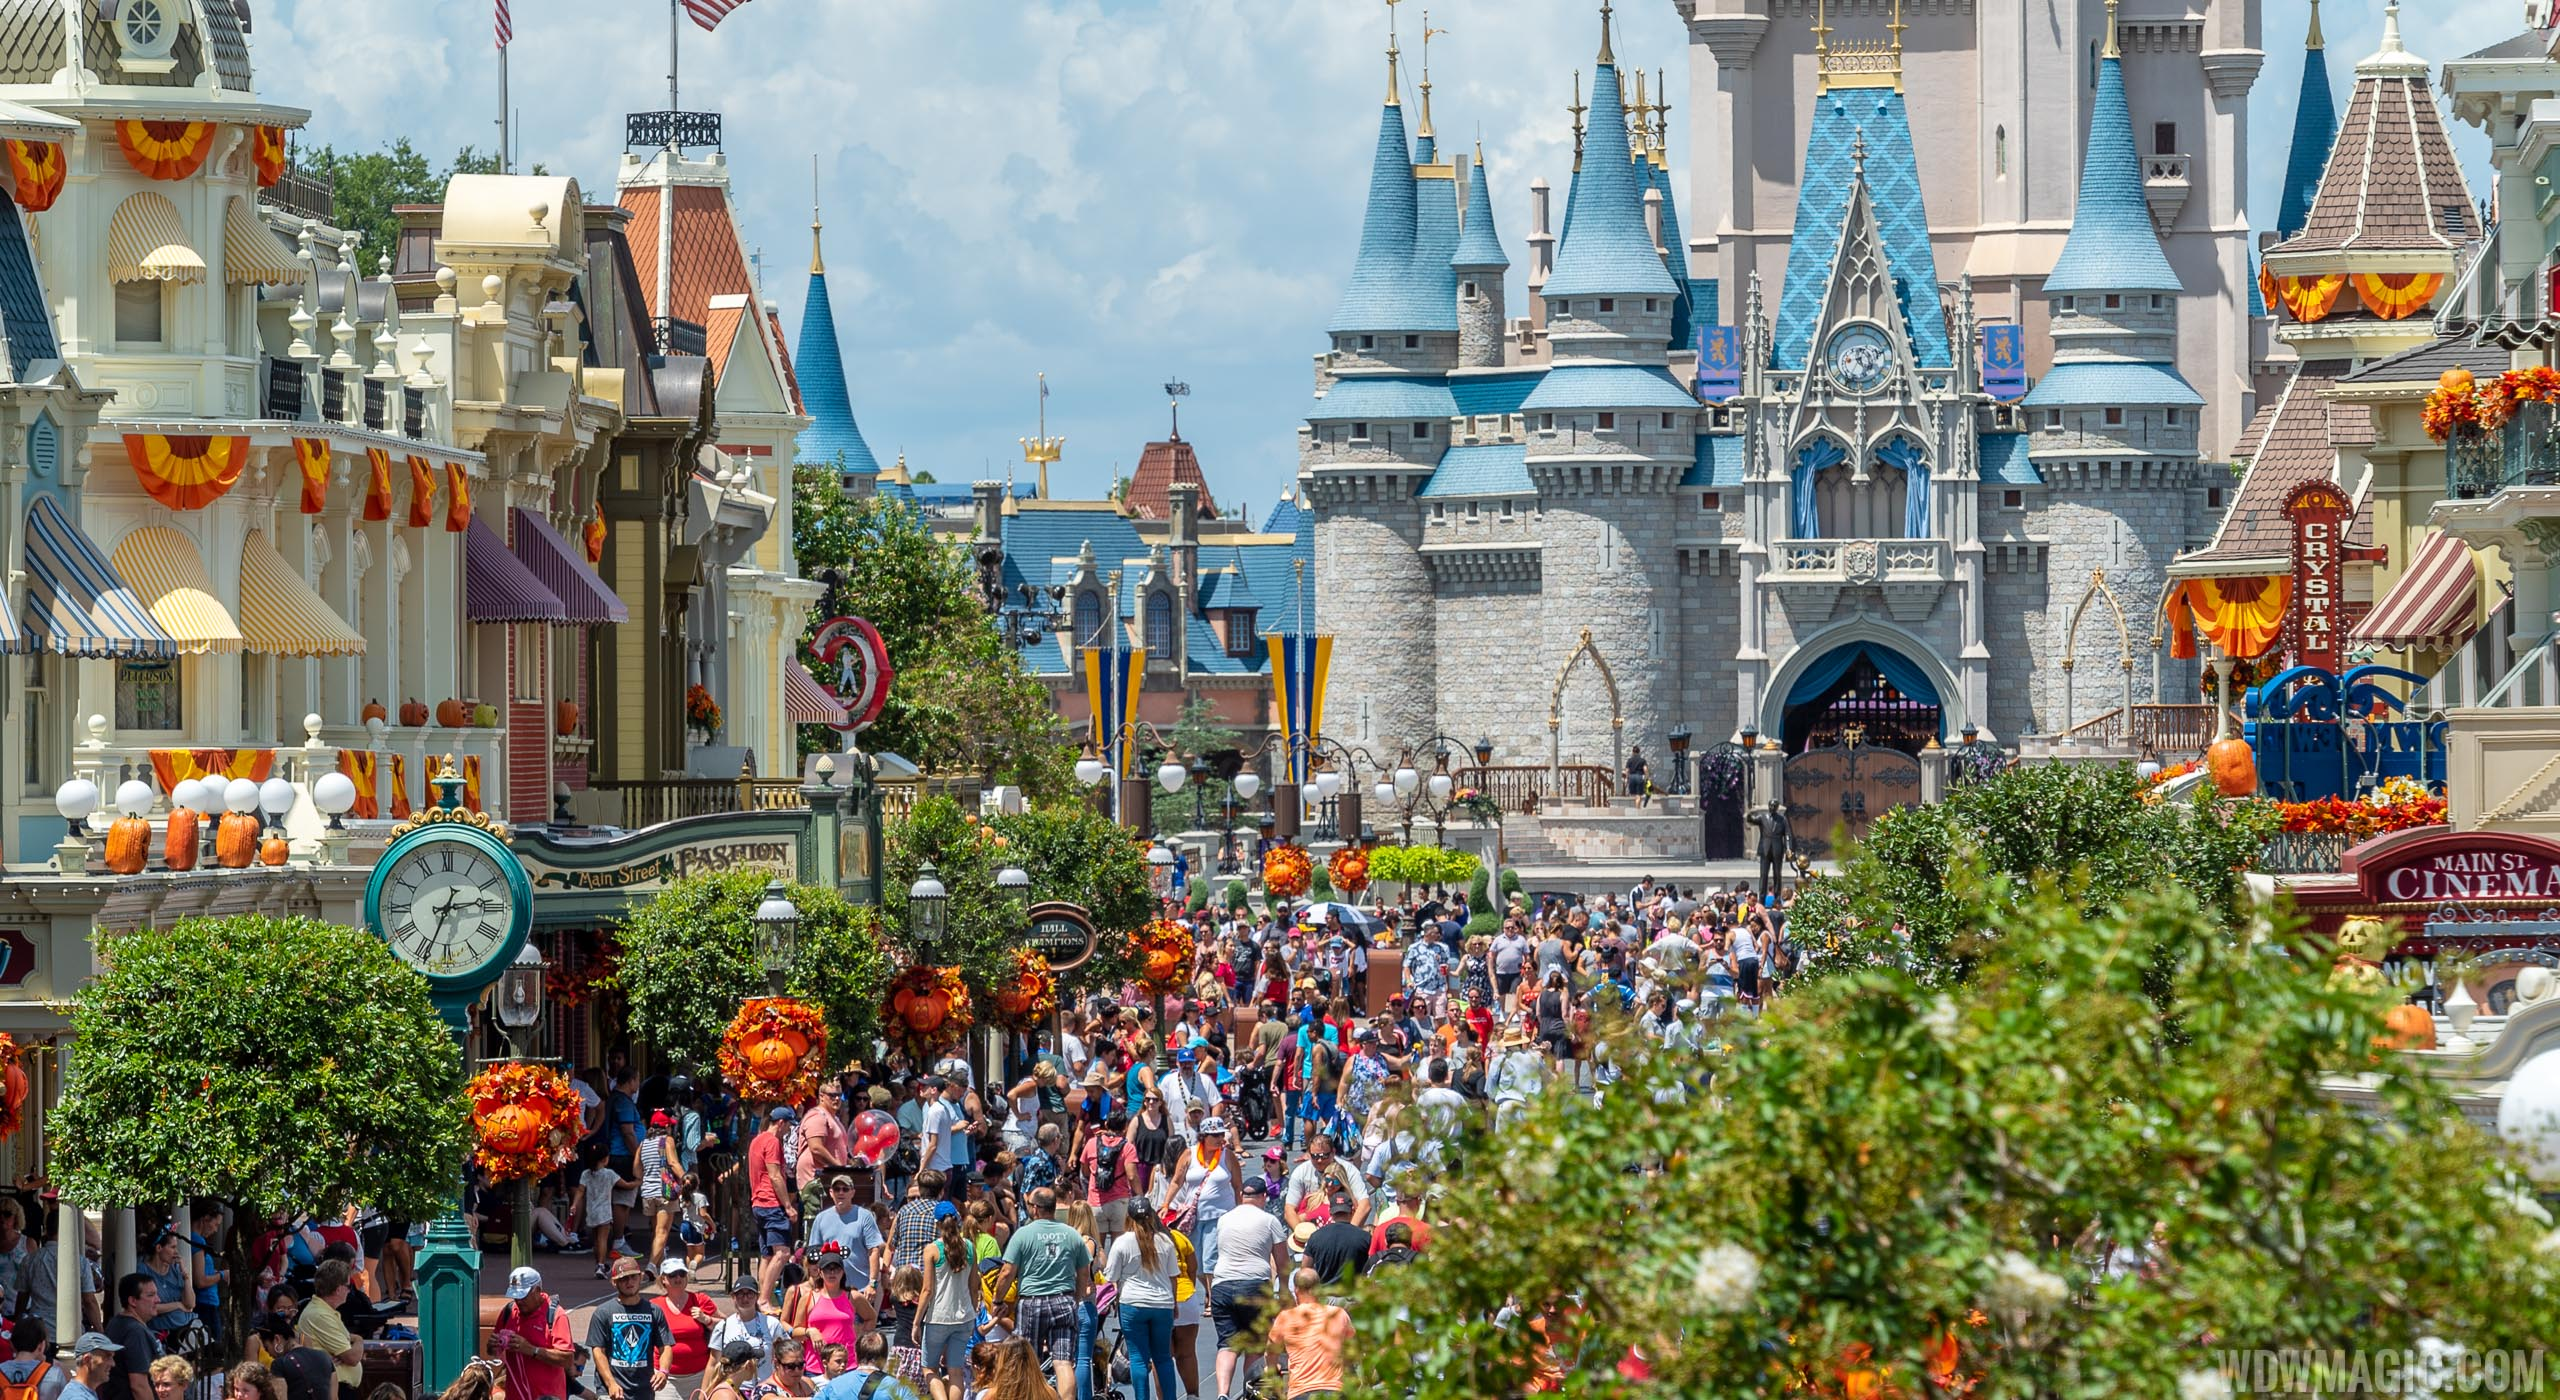 WDWMAGIC | Disney World News, Rumors, Info and Forum